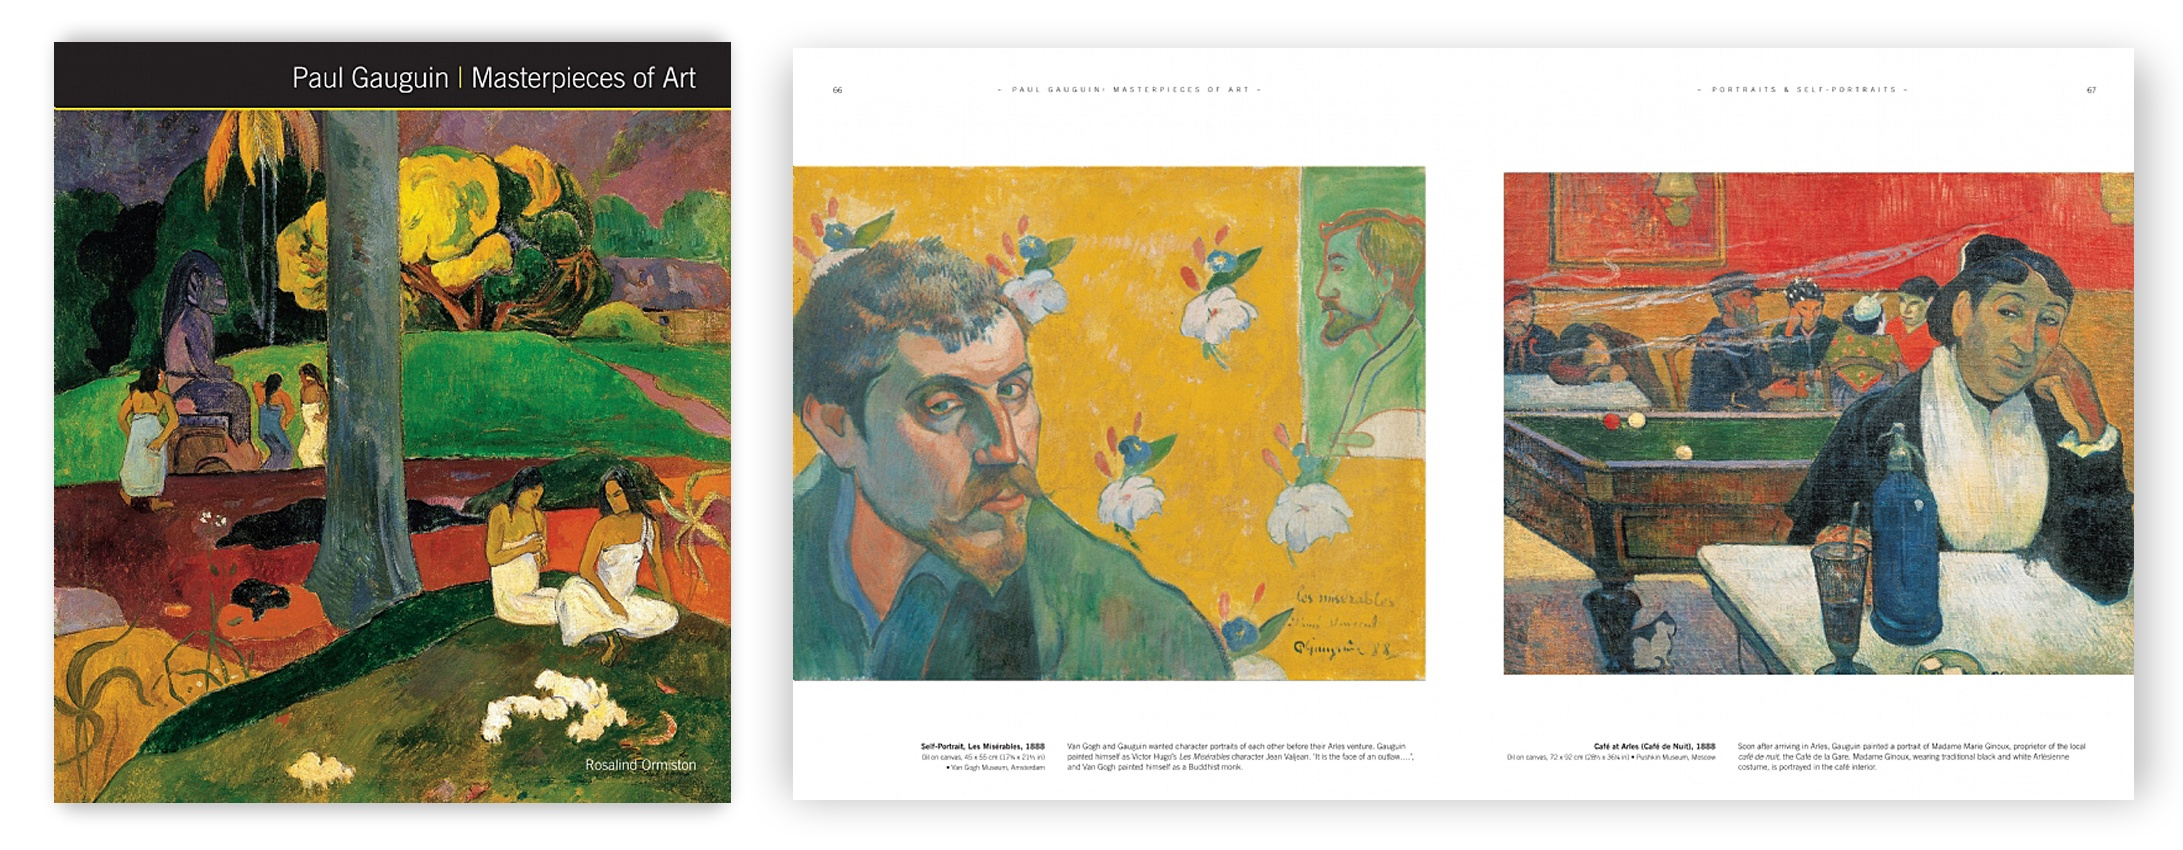 gauguin- Masterpieces of Art w- Spread